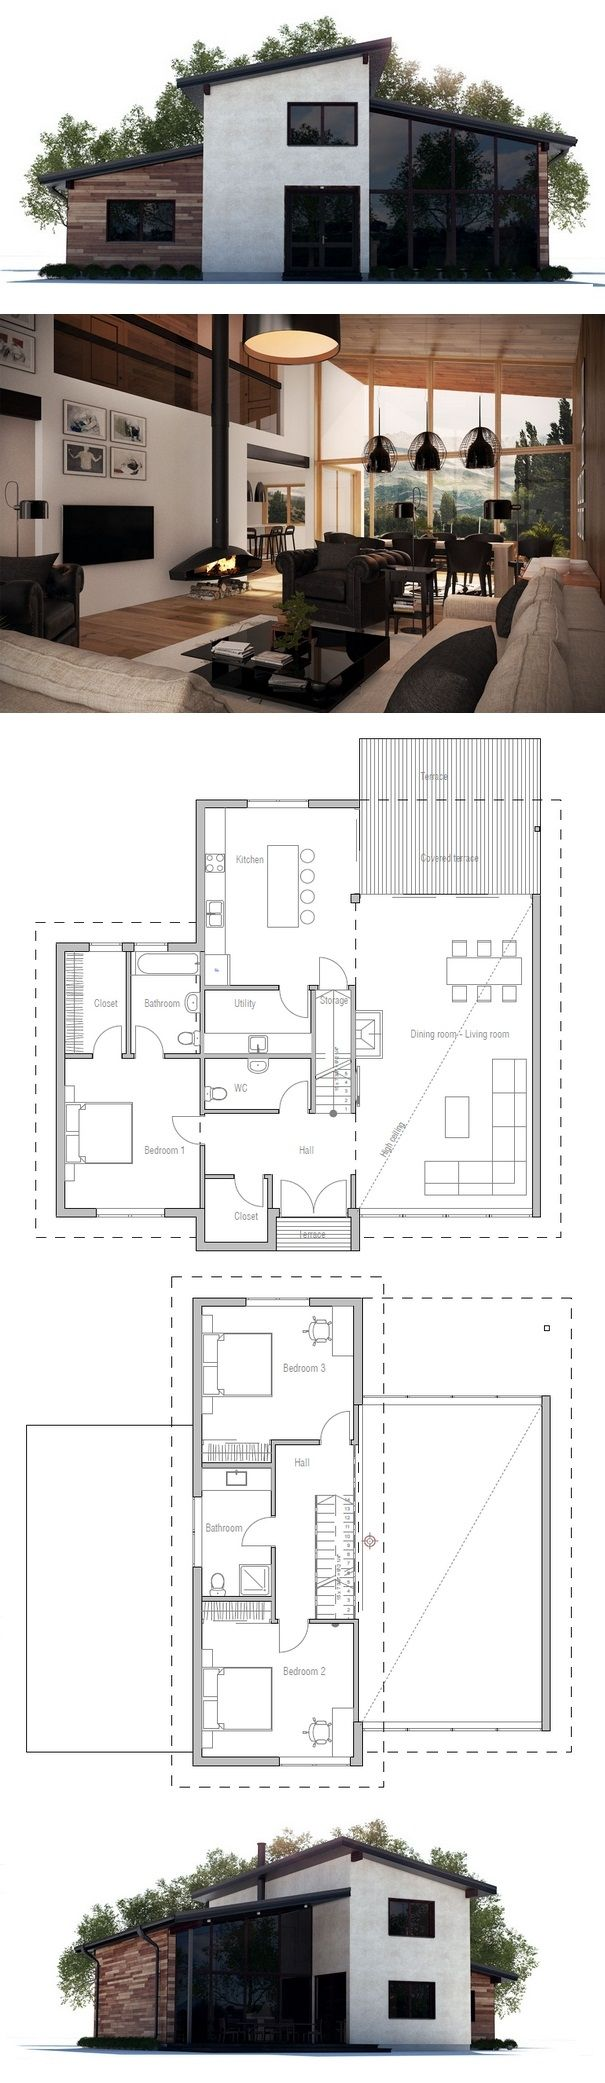 House plan from concepthome com